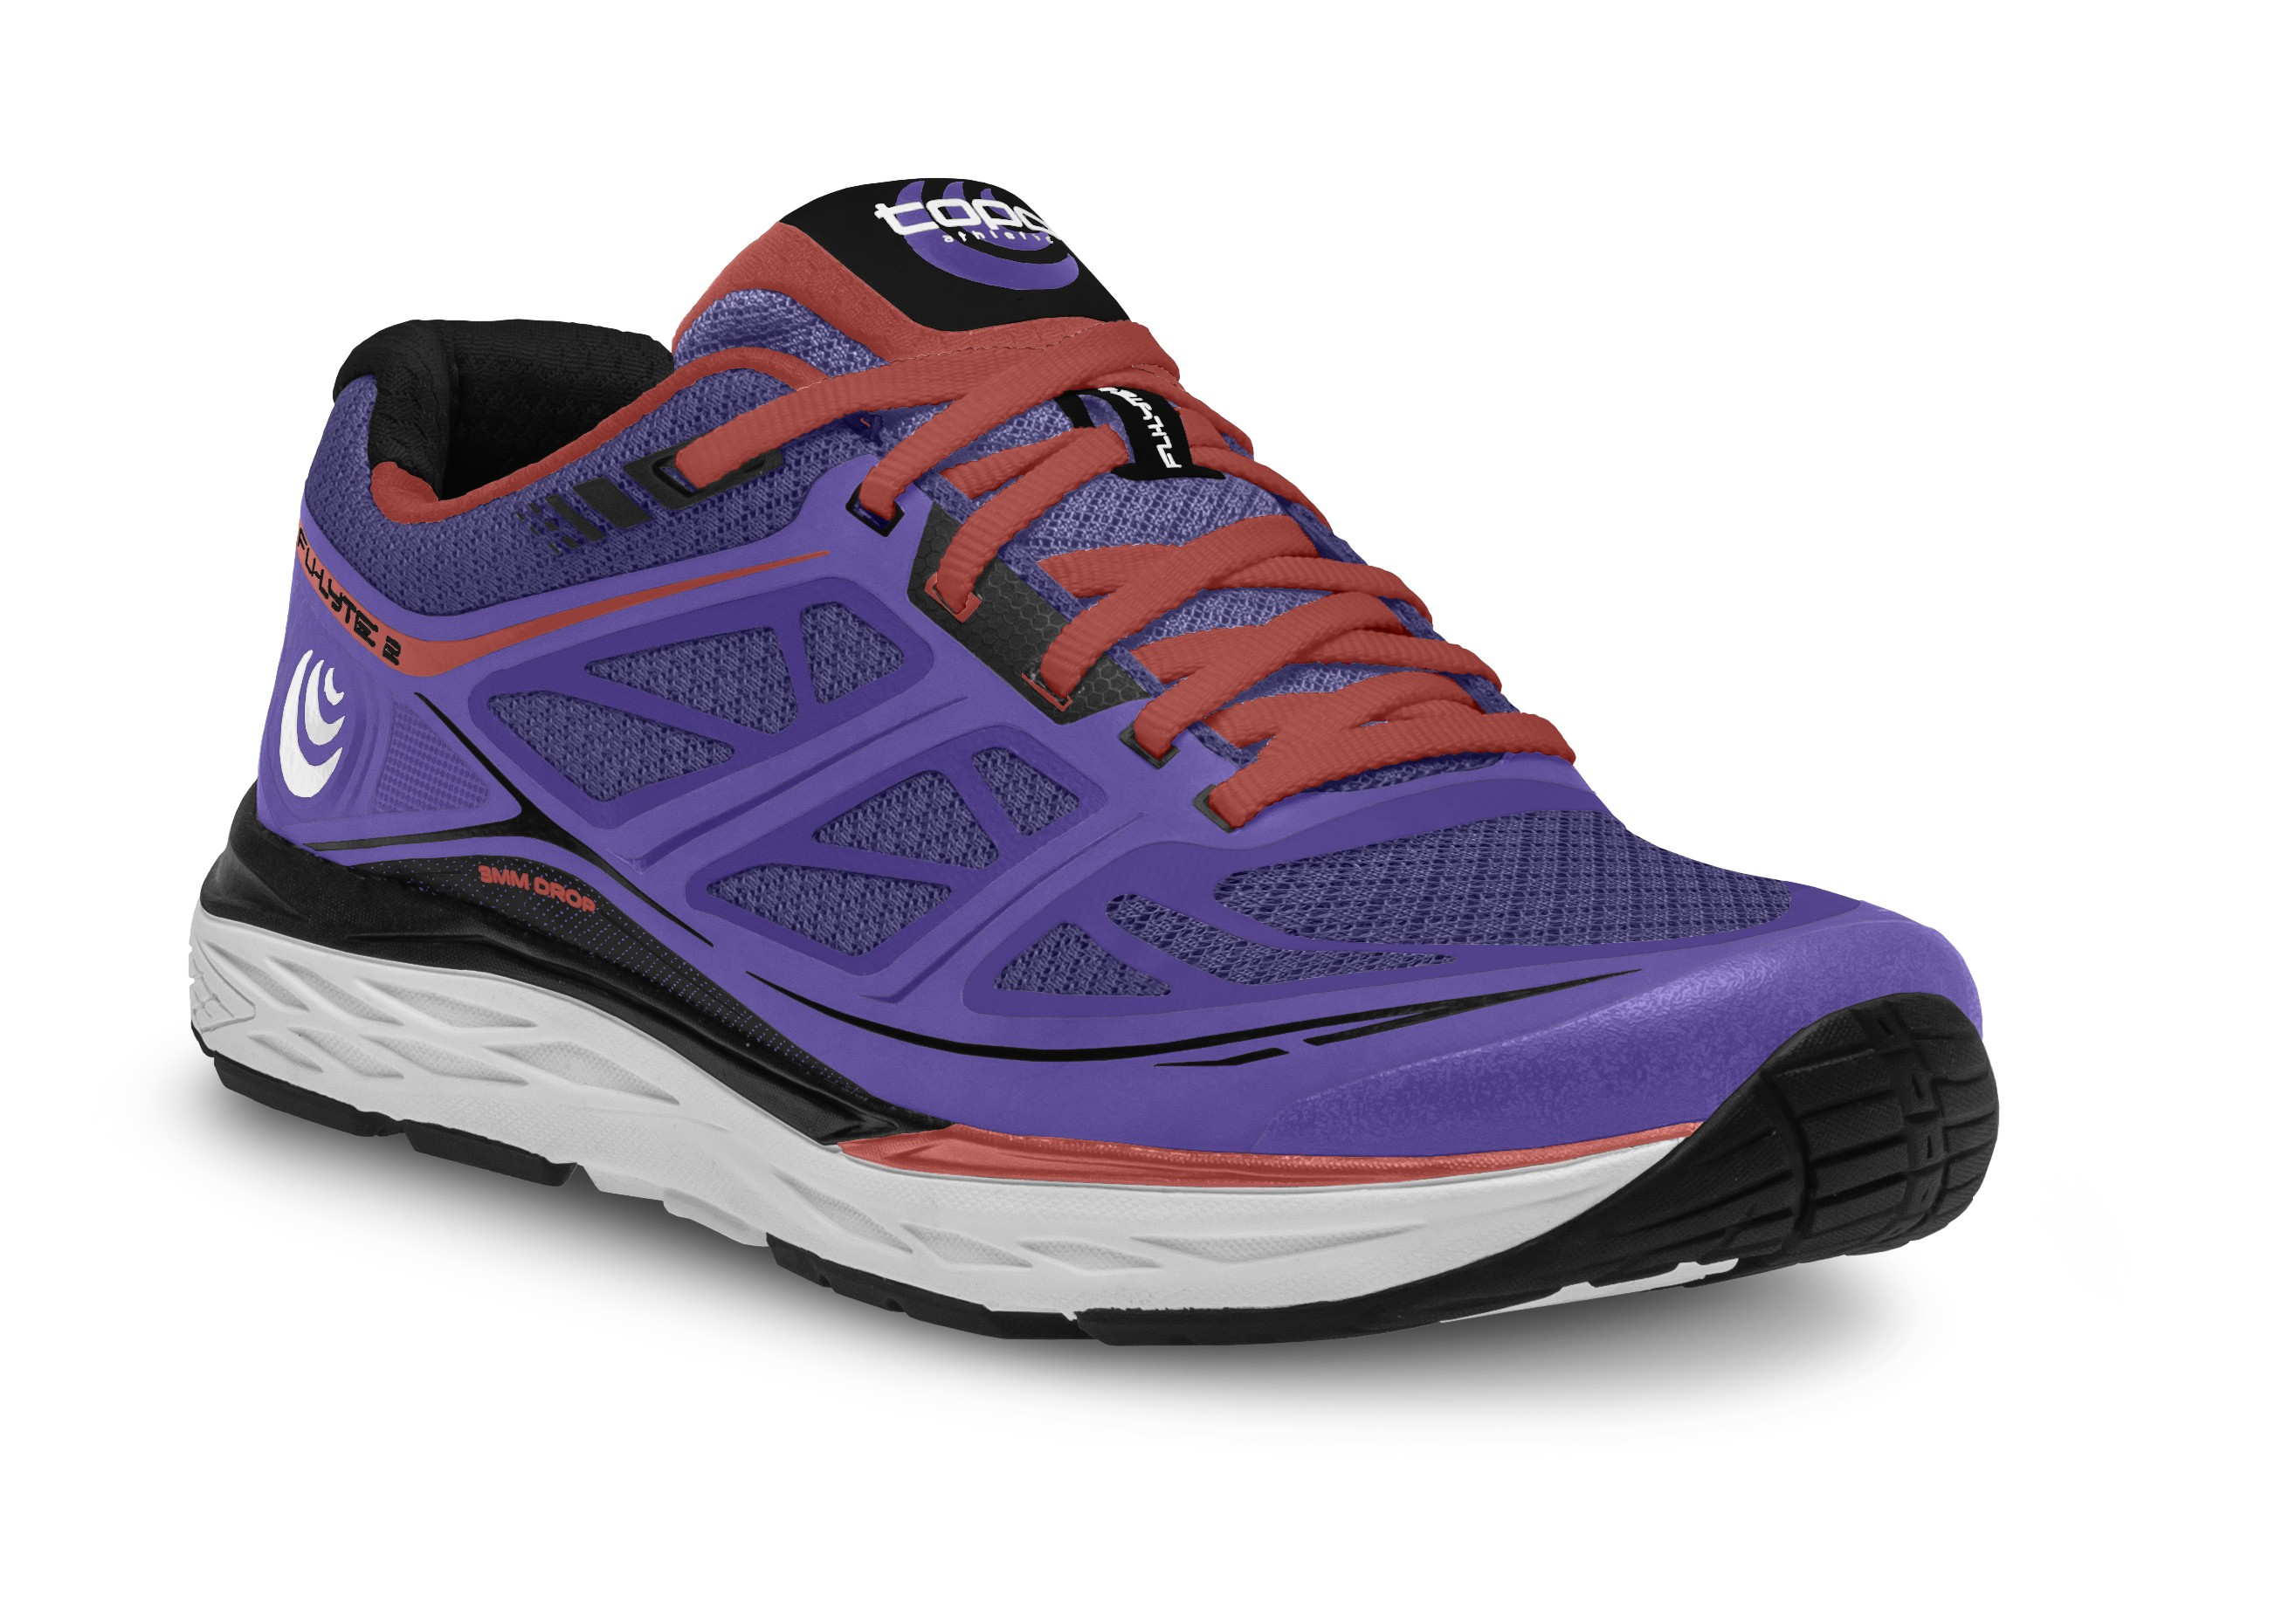 Runner's World - Fly-Lite 2